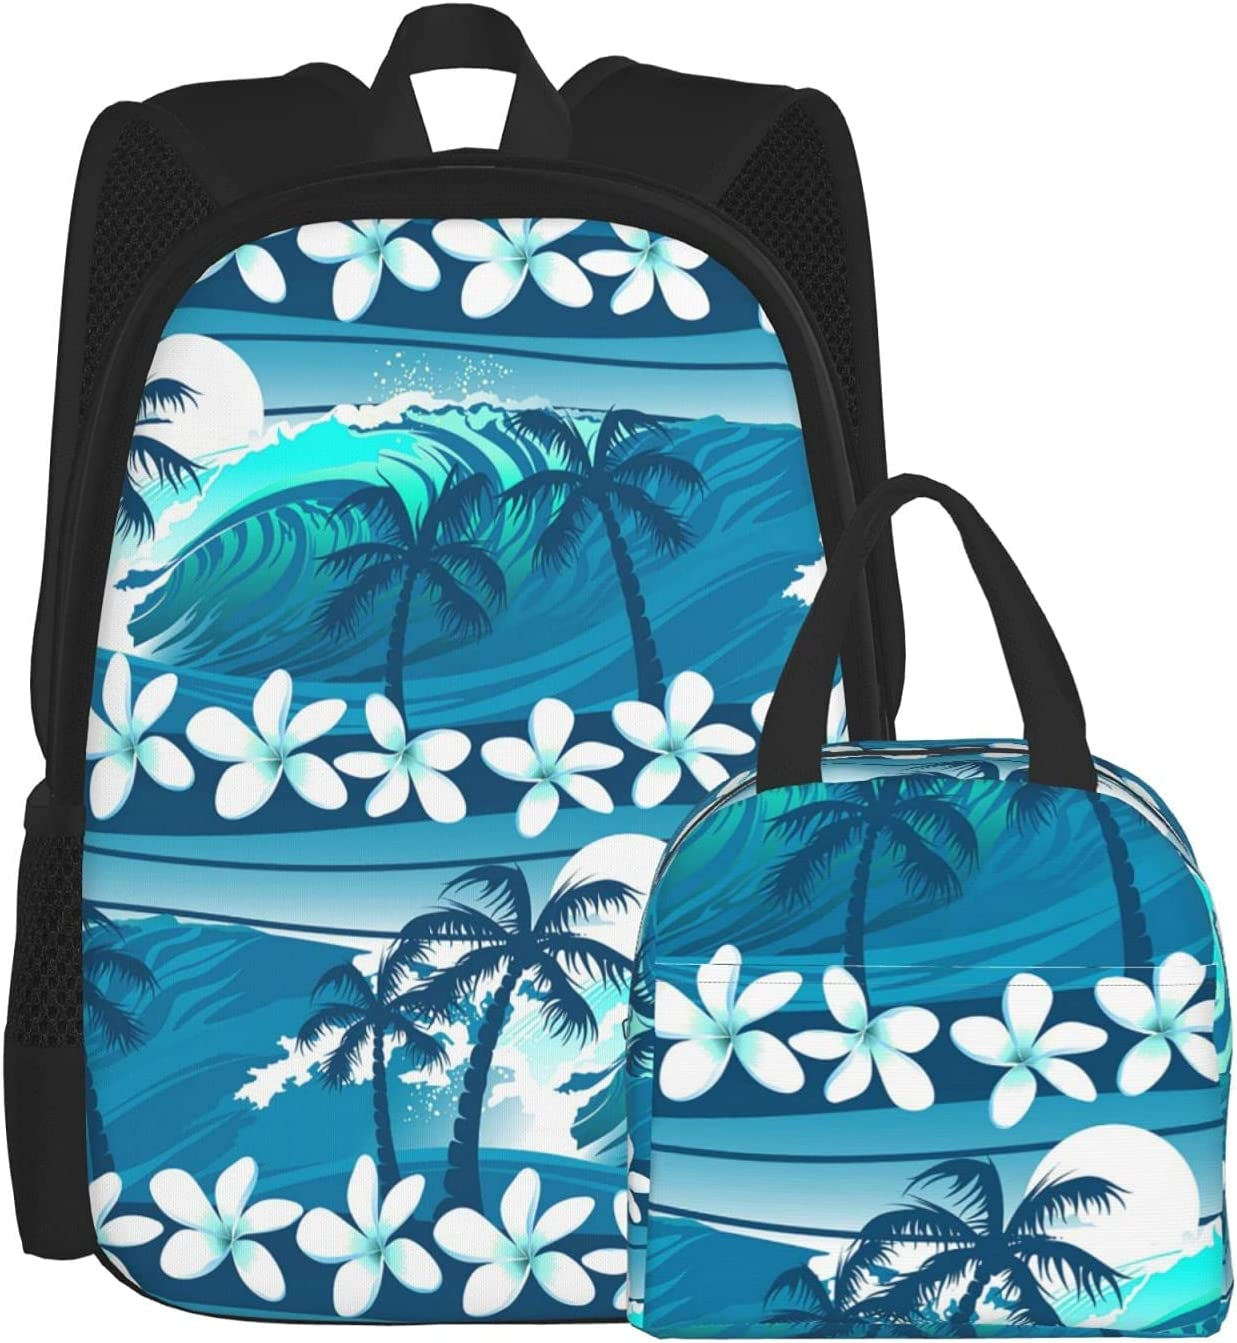 Blue Tropical Surfing With Palm Trees Backpacks Bargain sale Box Now free shipping with f Lunch